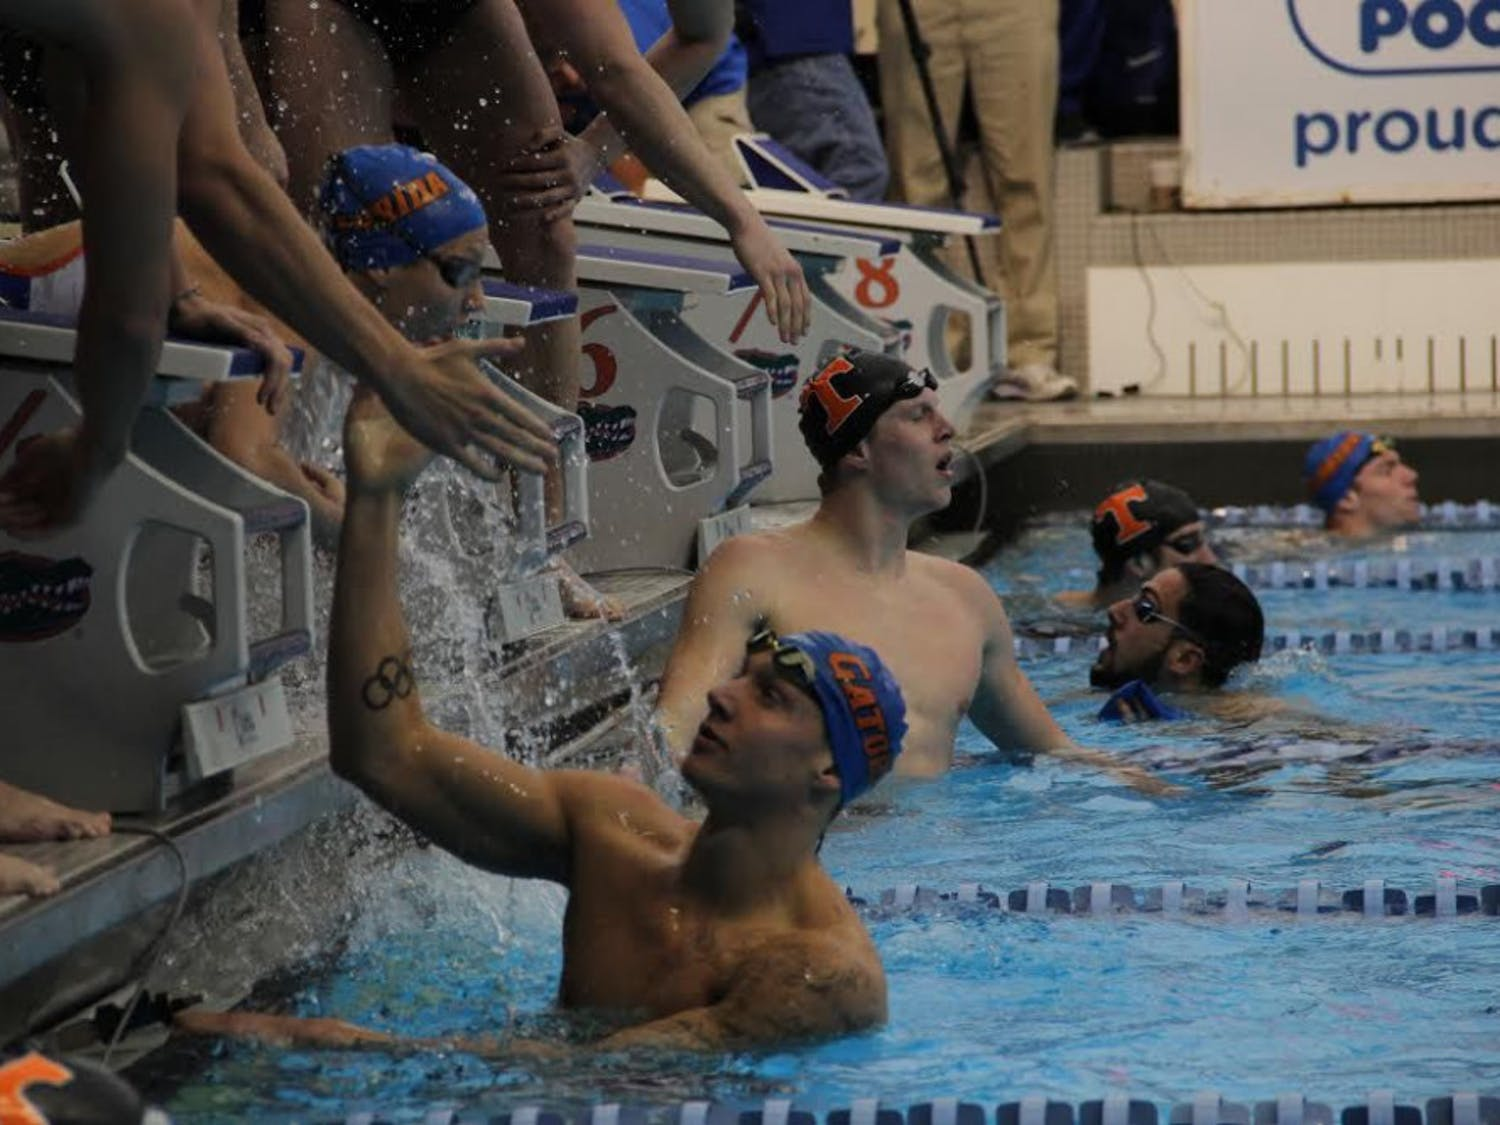 UF swimmer Caeleb Dressel slaps hands with a teammate during Florida's 183-117 win against Tennessee on Jan. 28, 2017, in the O'Connell Center.